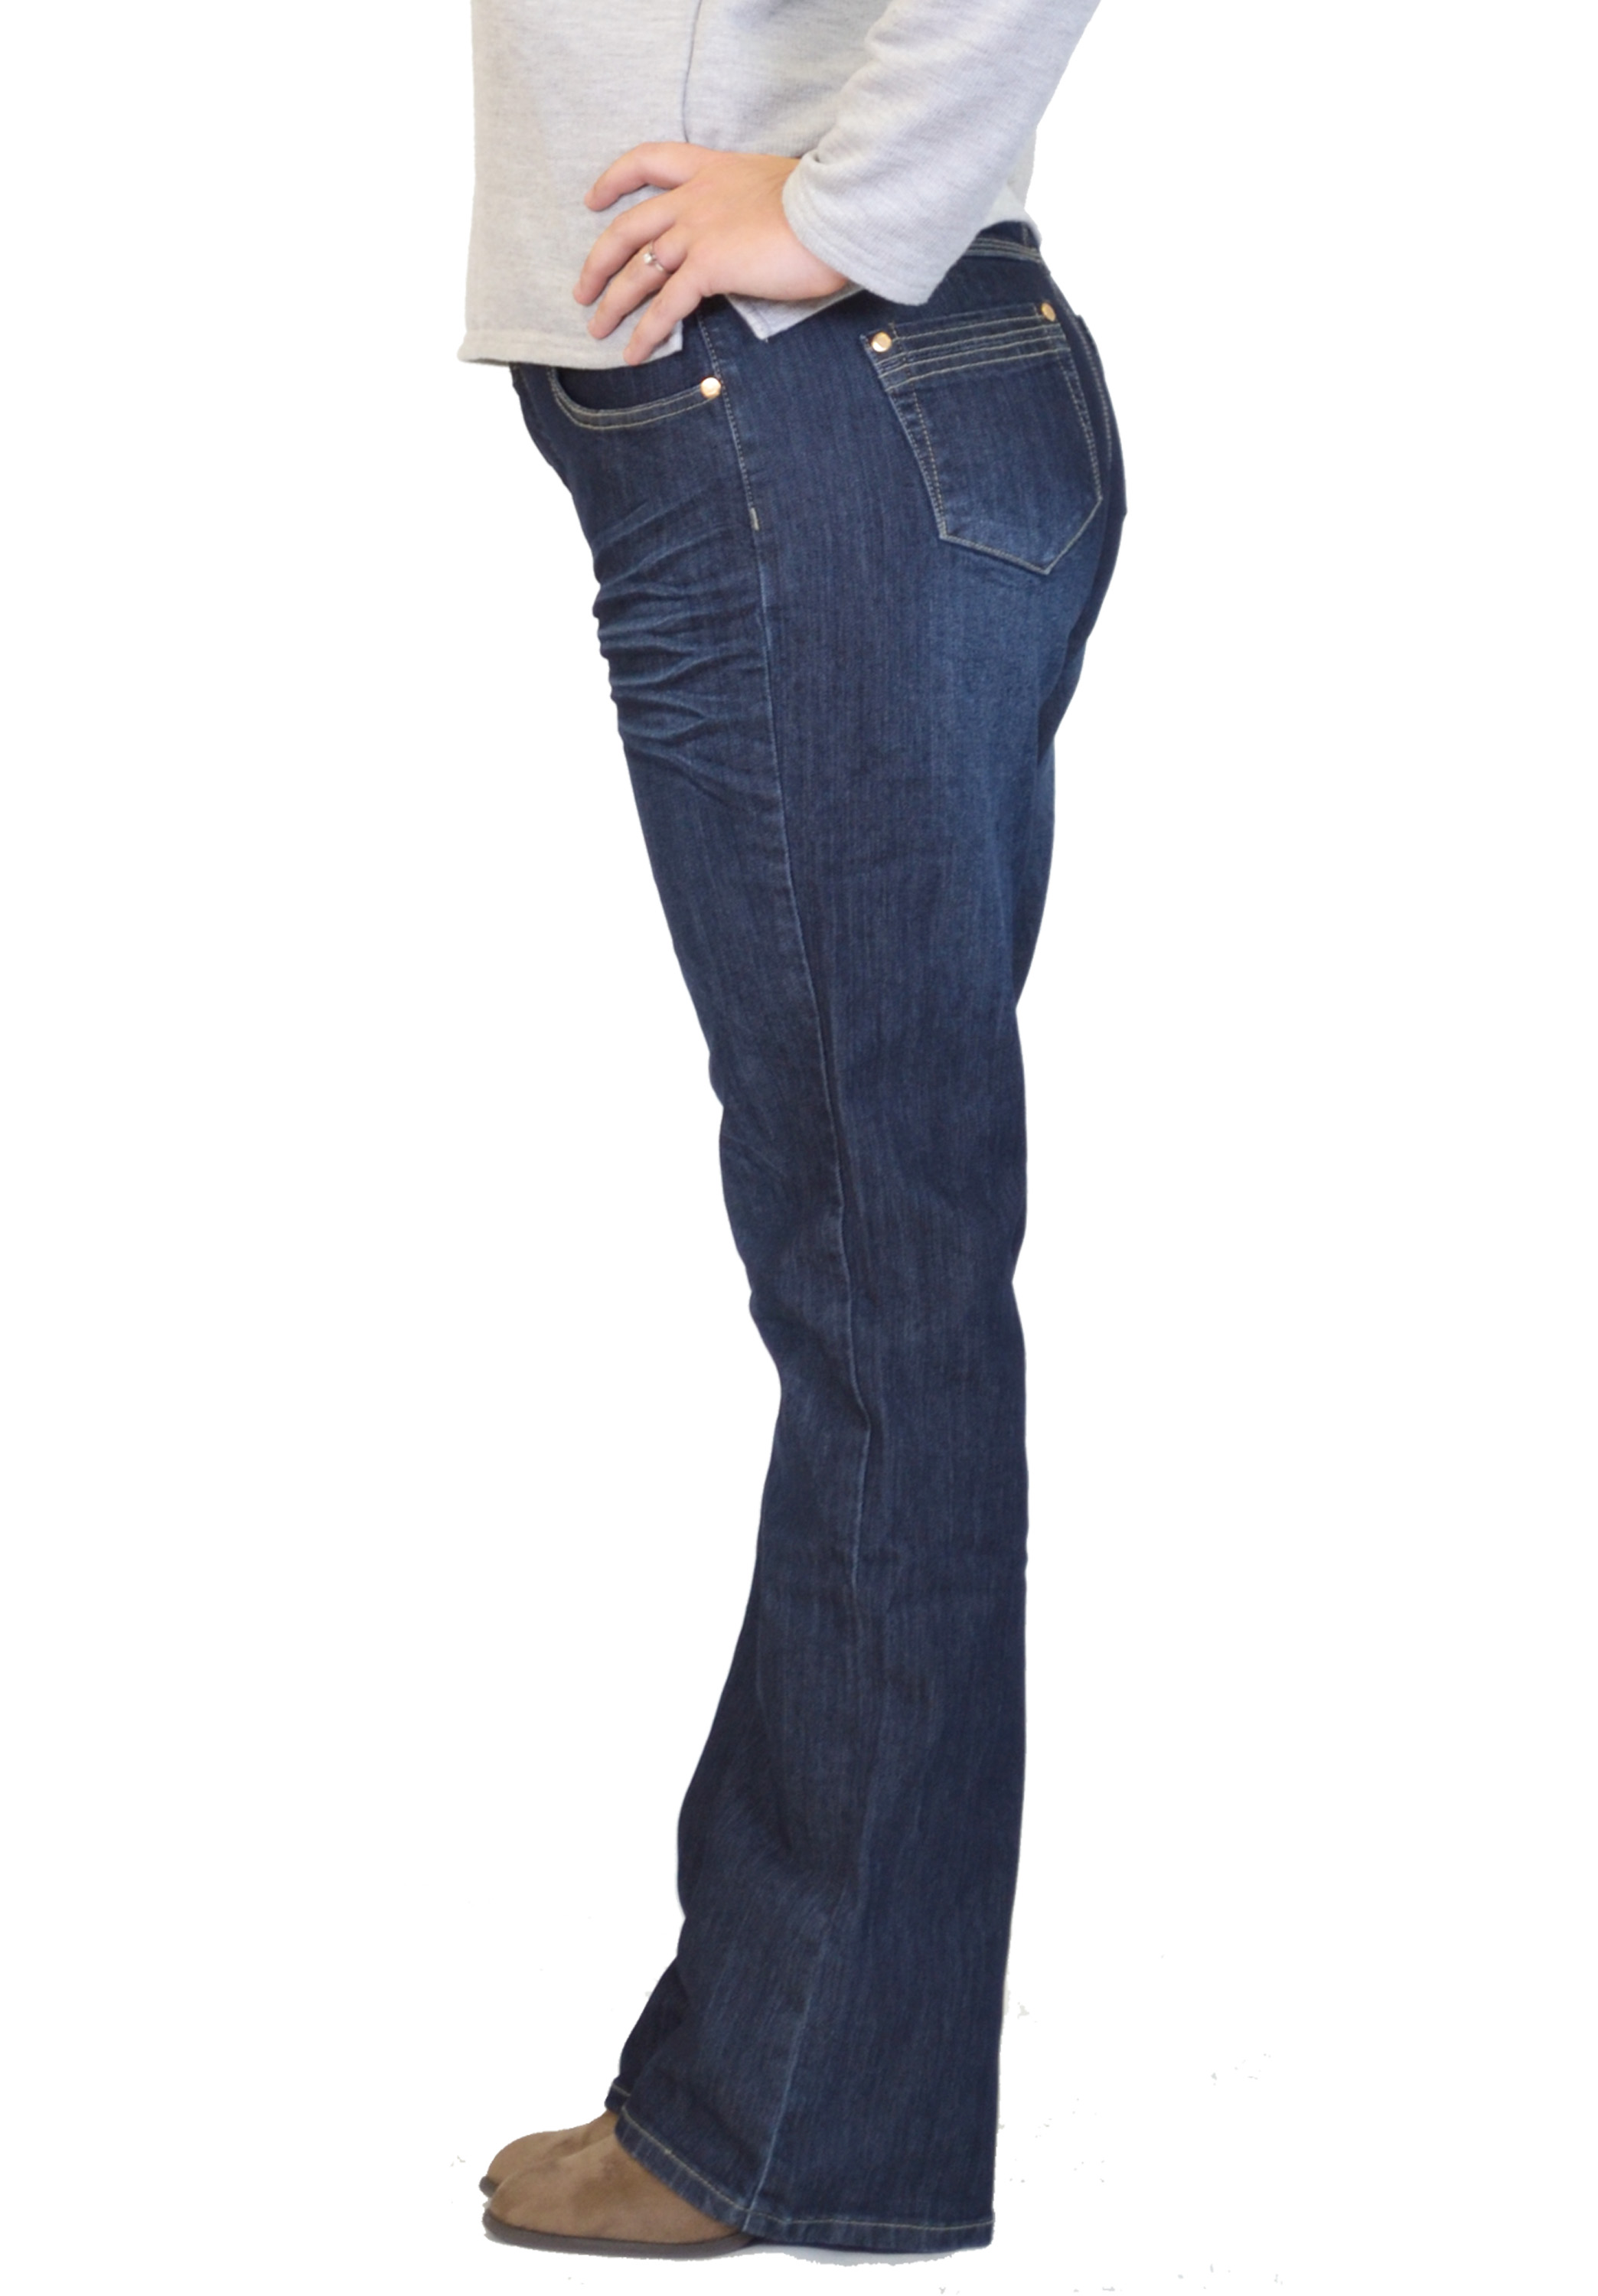 Find great quality women's bootcut jeans in a wide range of sizes and lengths. Shop Buckle for updated styles on the classic bootcut jean for women. Find great quality women's bootcut jeans in a wide range of sizes and lengths.